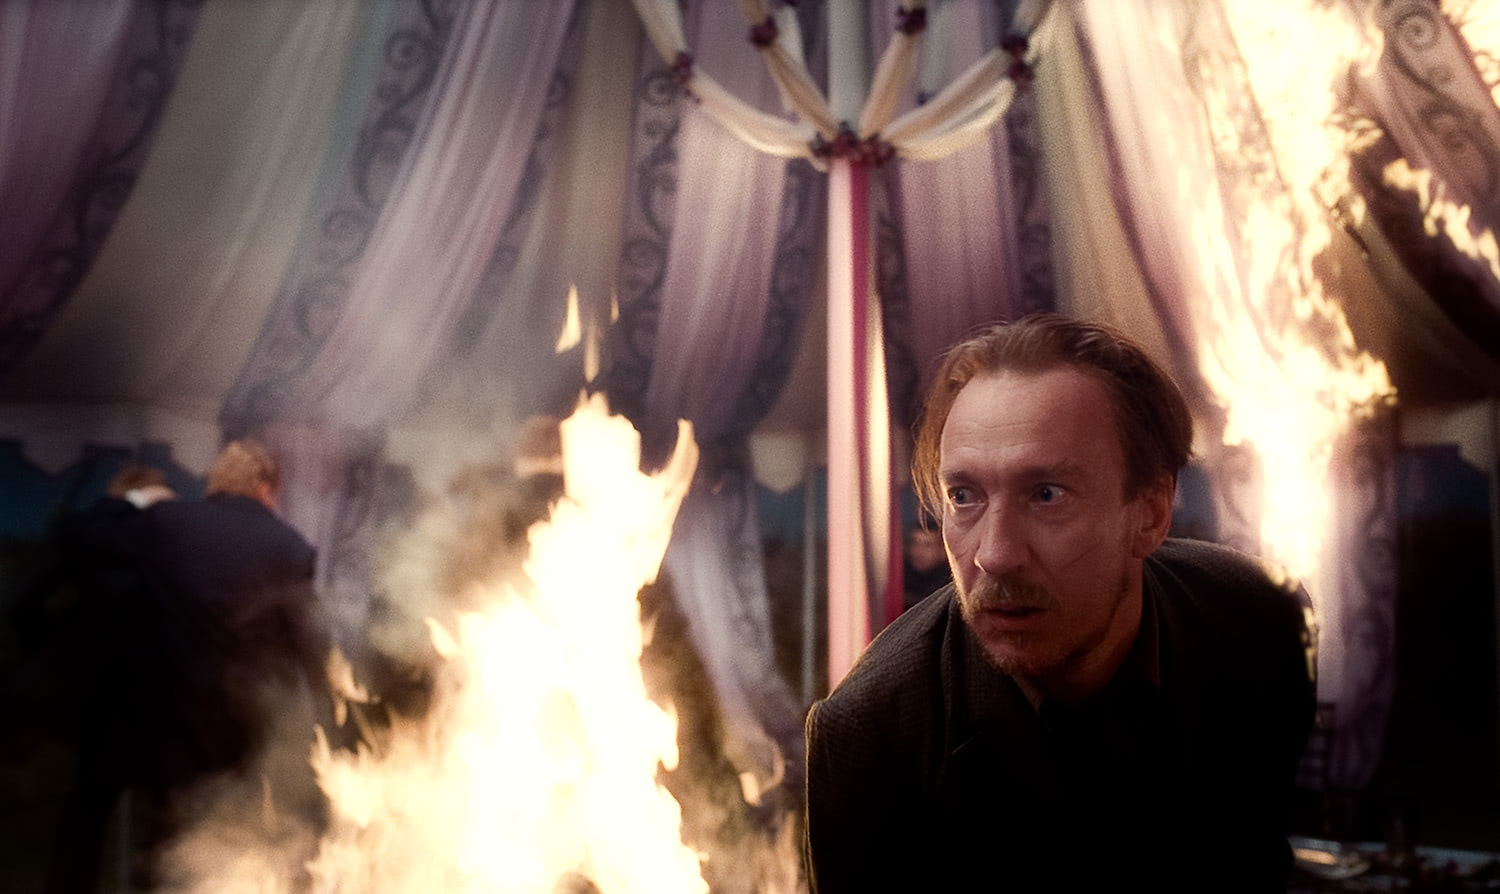 Lupin in the burning wedding tent